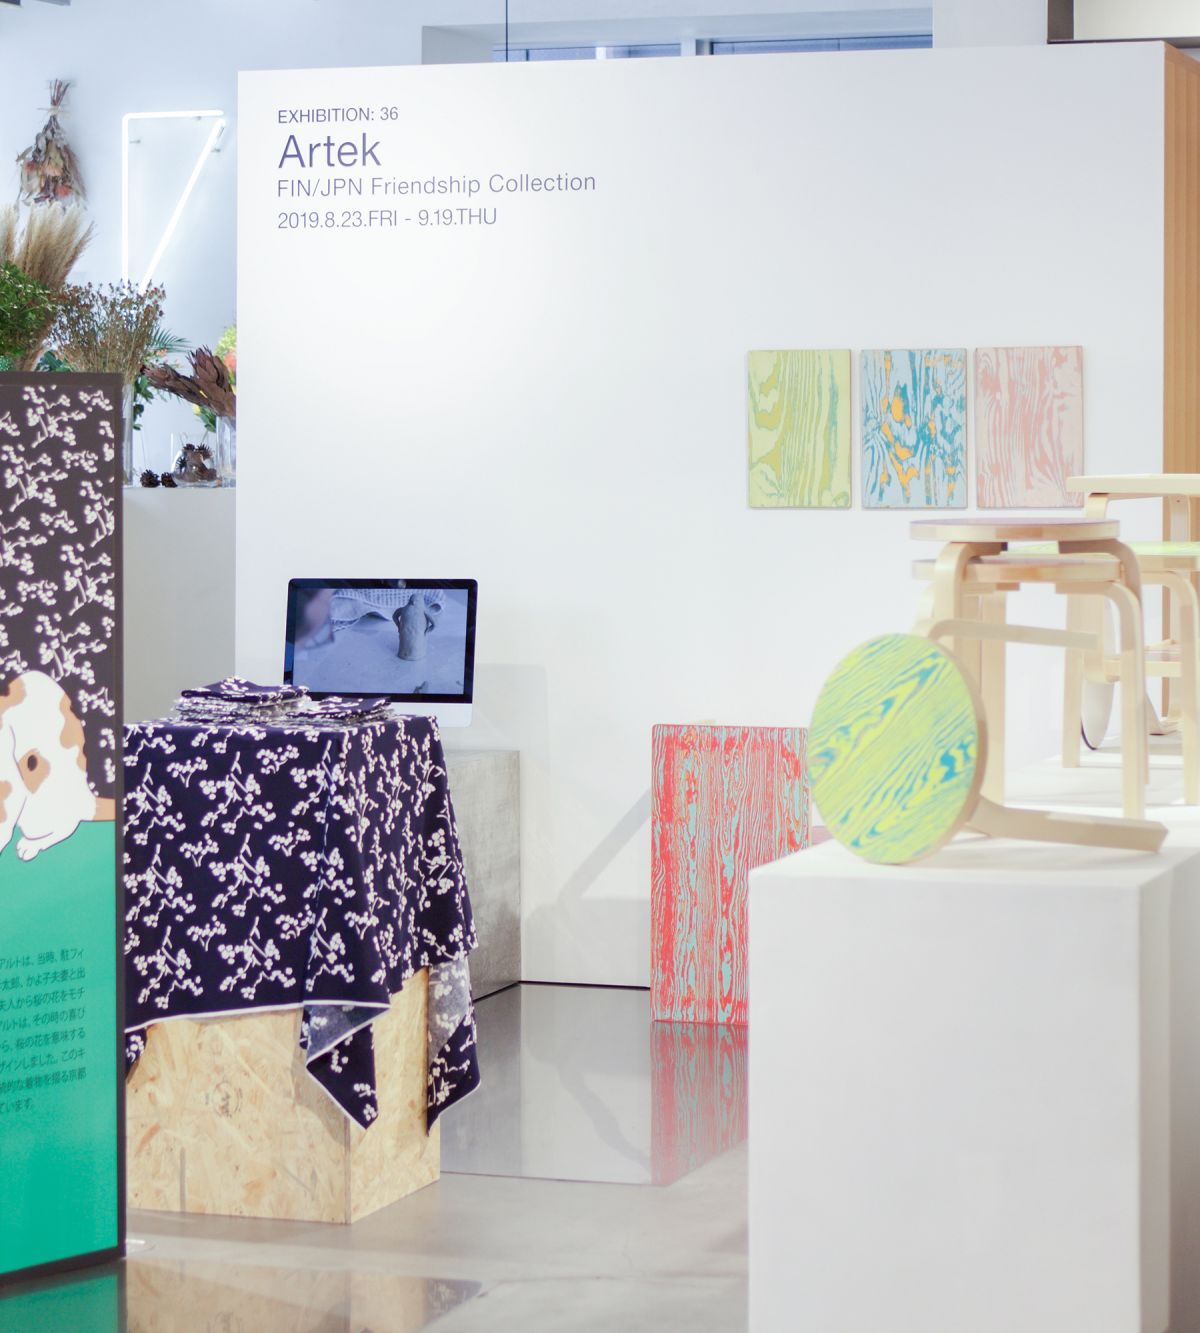 CIBONE Aoyama にてArtek FIN/JPN Friendship Collection Exhibition開催